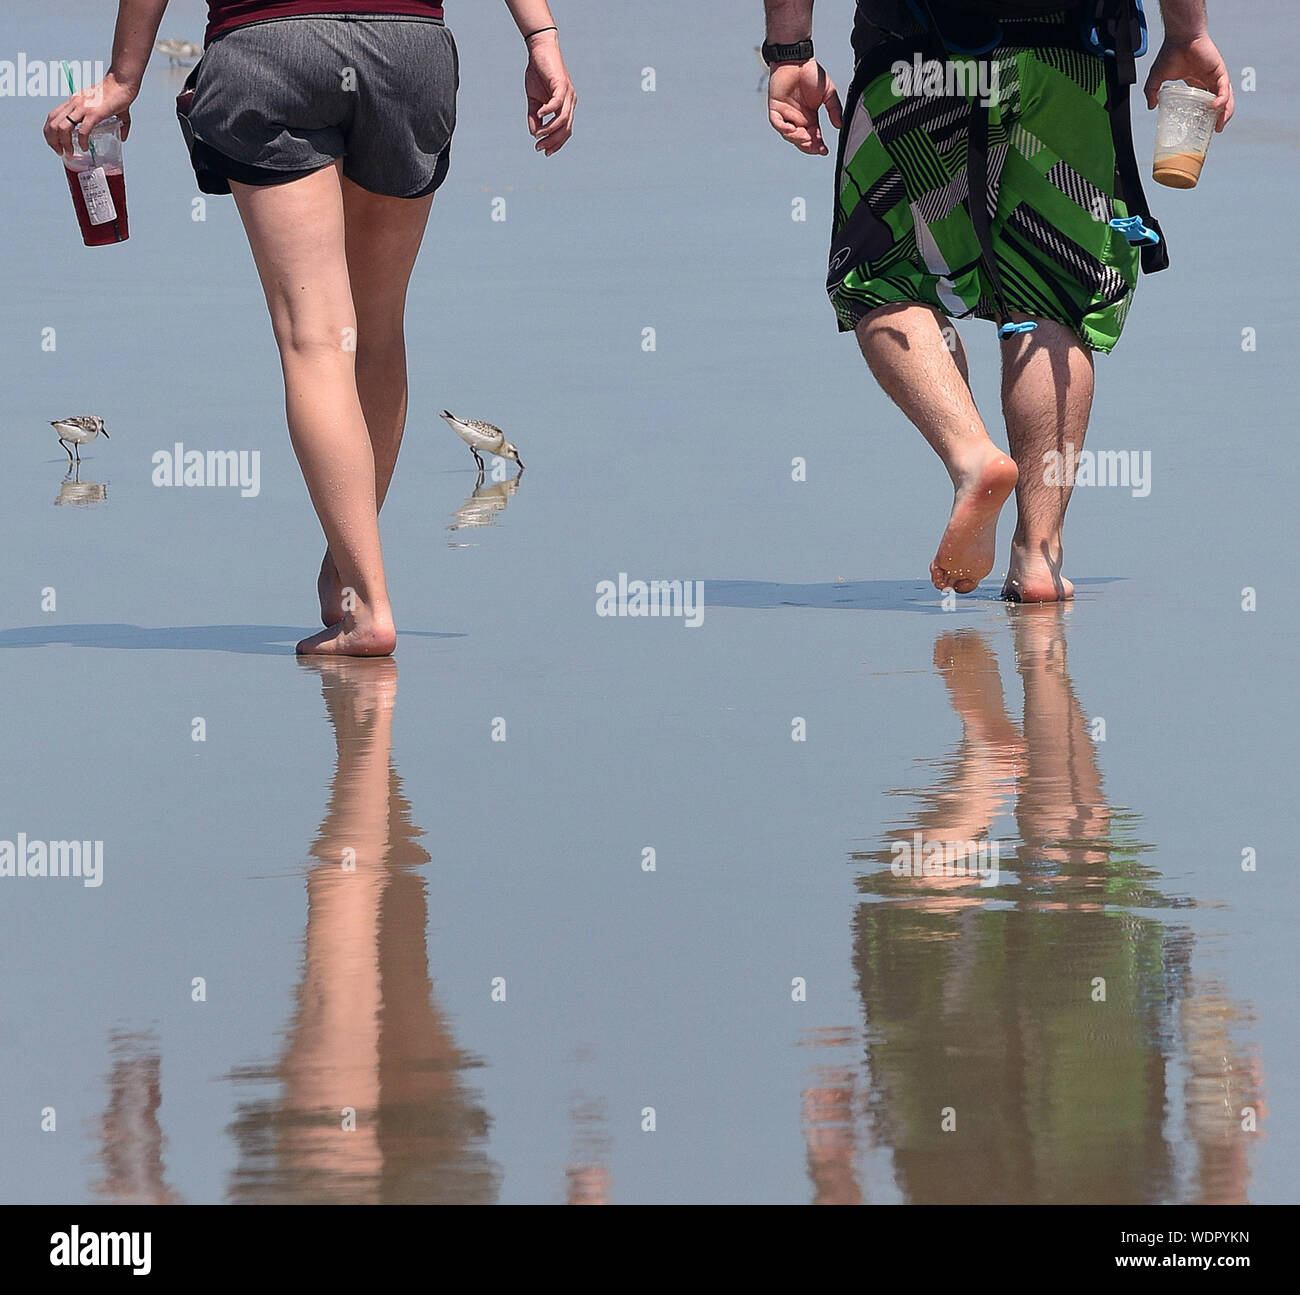 Titusville, FL, USA. 29th Aug, 2019. People walk at the beach several days ahead of the Hurricane Dorian which is expected to become a Category 4 hurricane before making landfall in Florida on Labor Day. Credit: Paul Hennessy/SOPA Images/ZUMA Wire/Alamy Live News Stock Photo